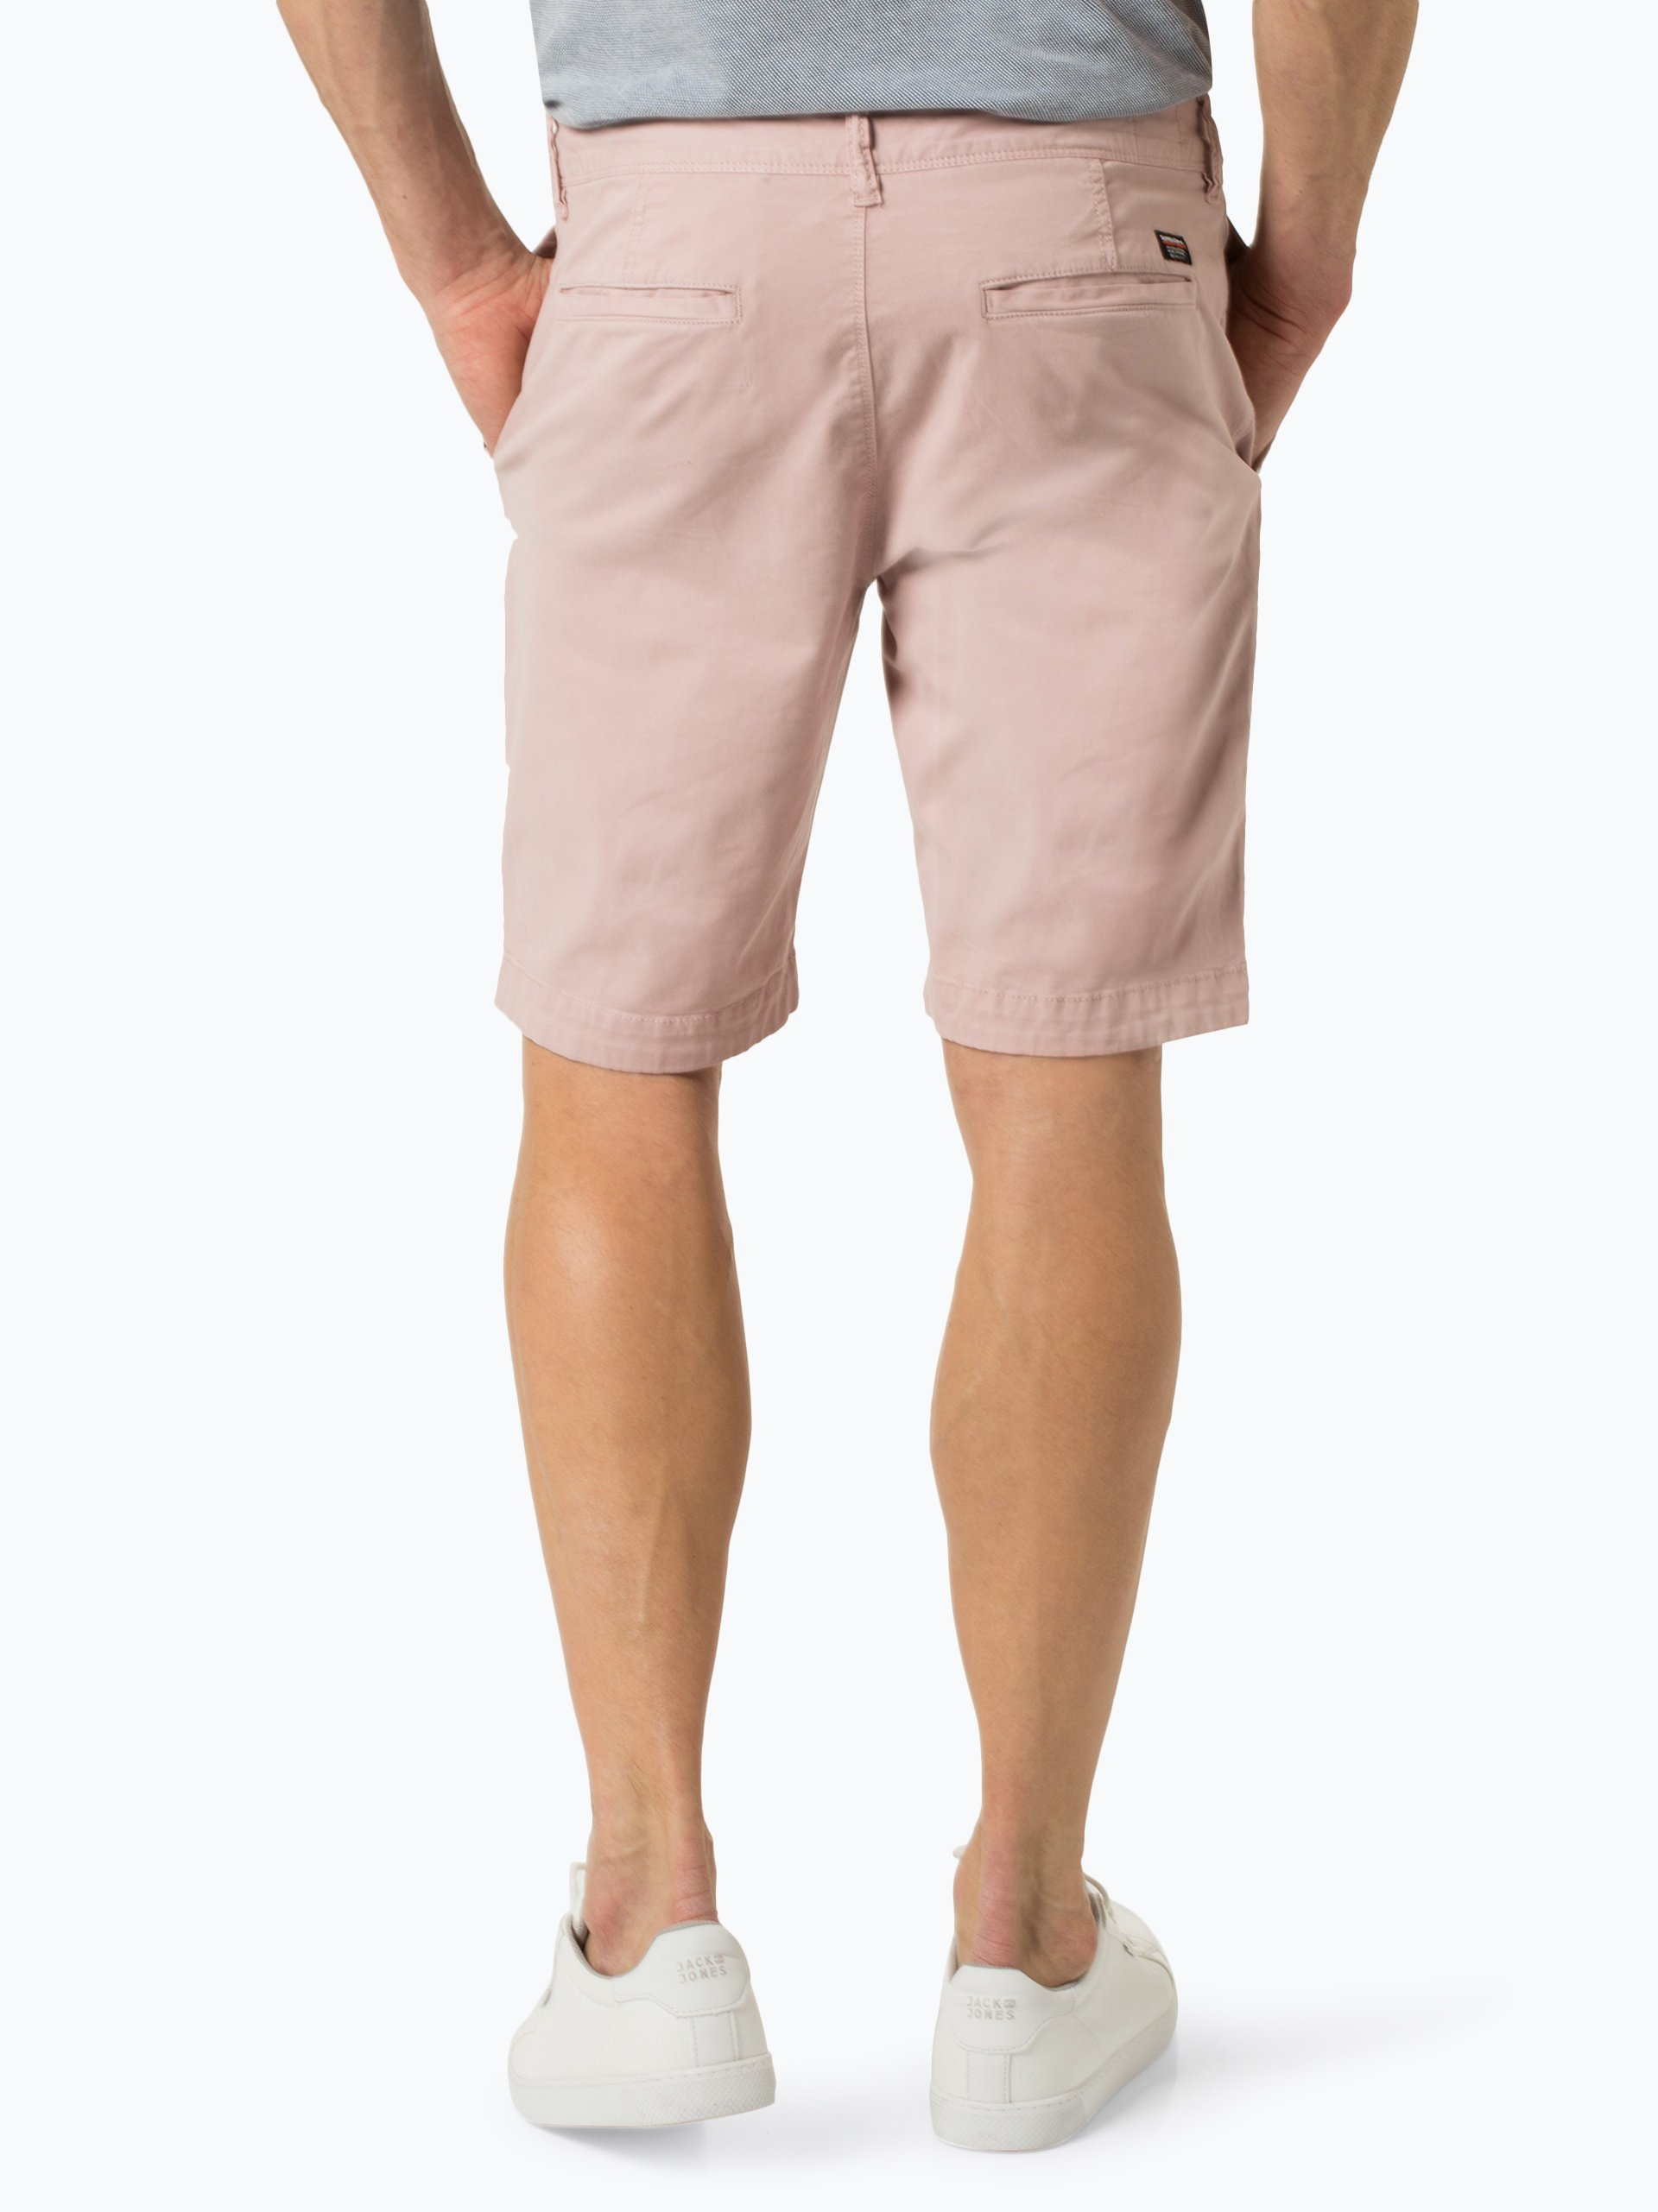 Superdry Herren Shorts - Chino Short